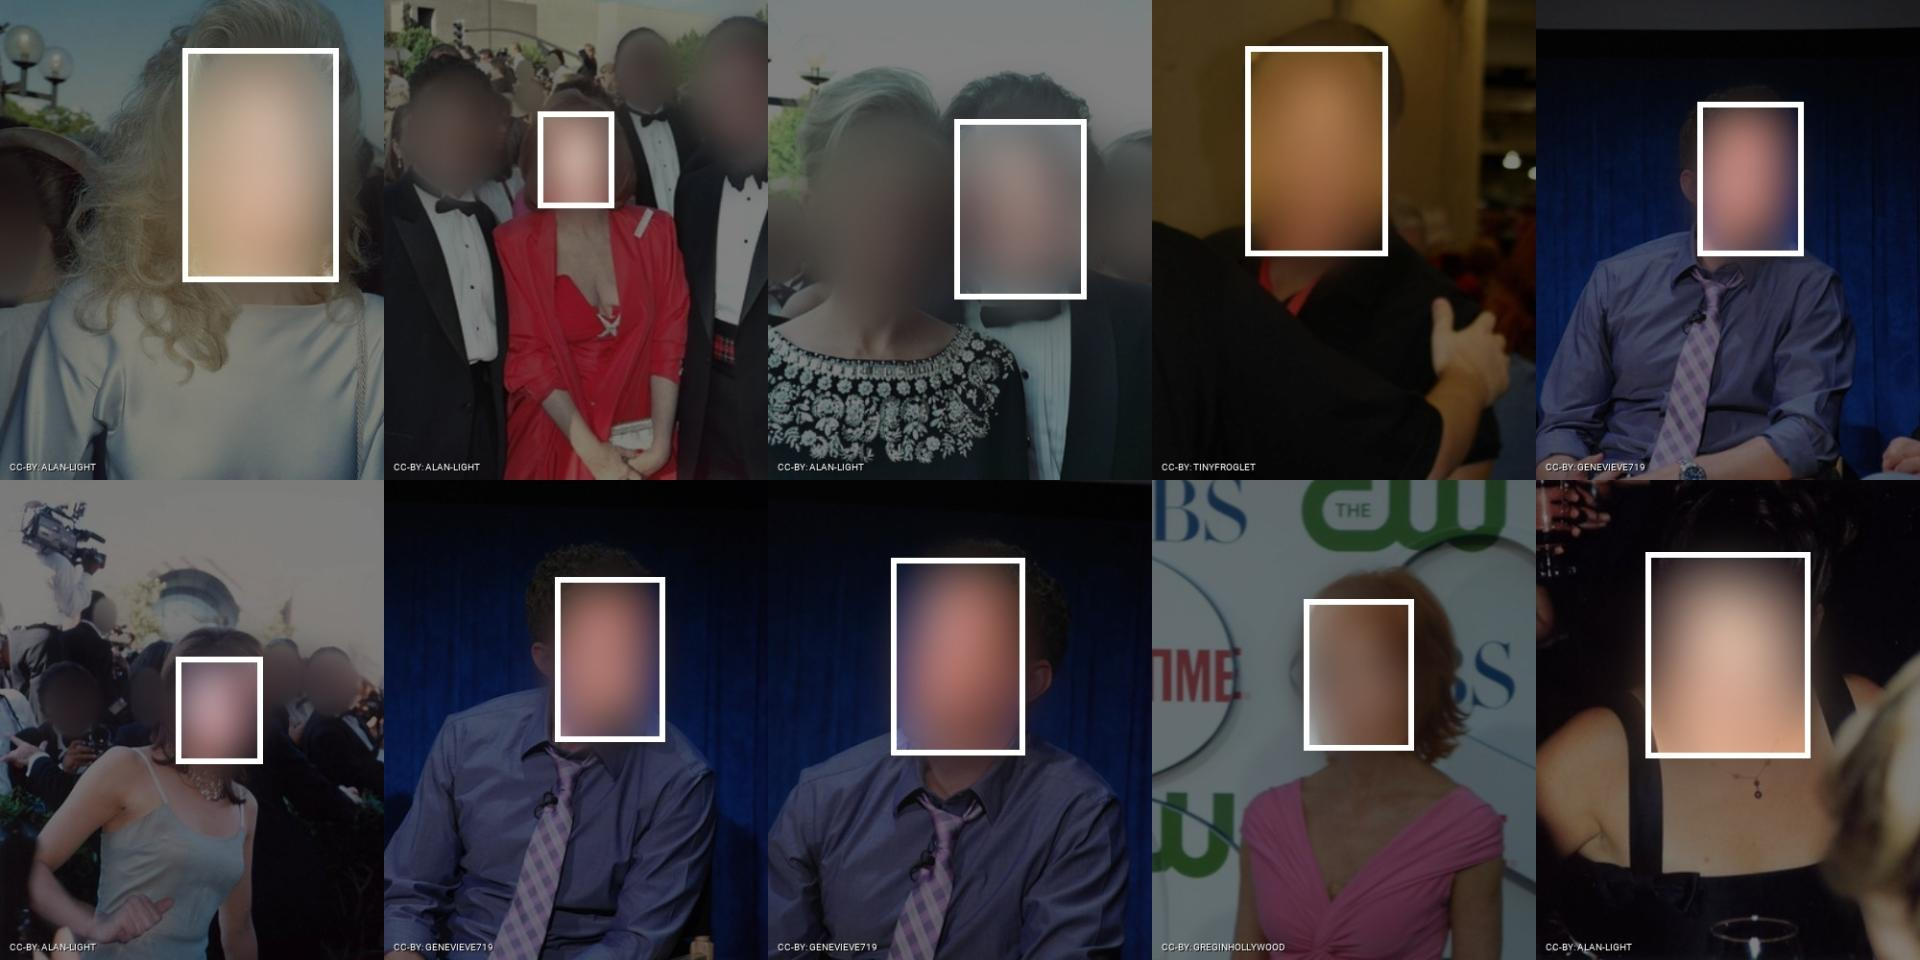 Example mages from the FaceScrub dataset. Faces are blurred to protect privacy. Visualization by Adam Harvey / Exposing.ai. All images licensed under CC-BY-NC with original images licensed and attributed under Creative Commons CC-BY (attribution required, no commercial use).